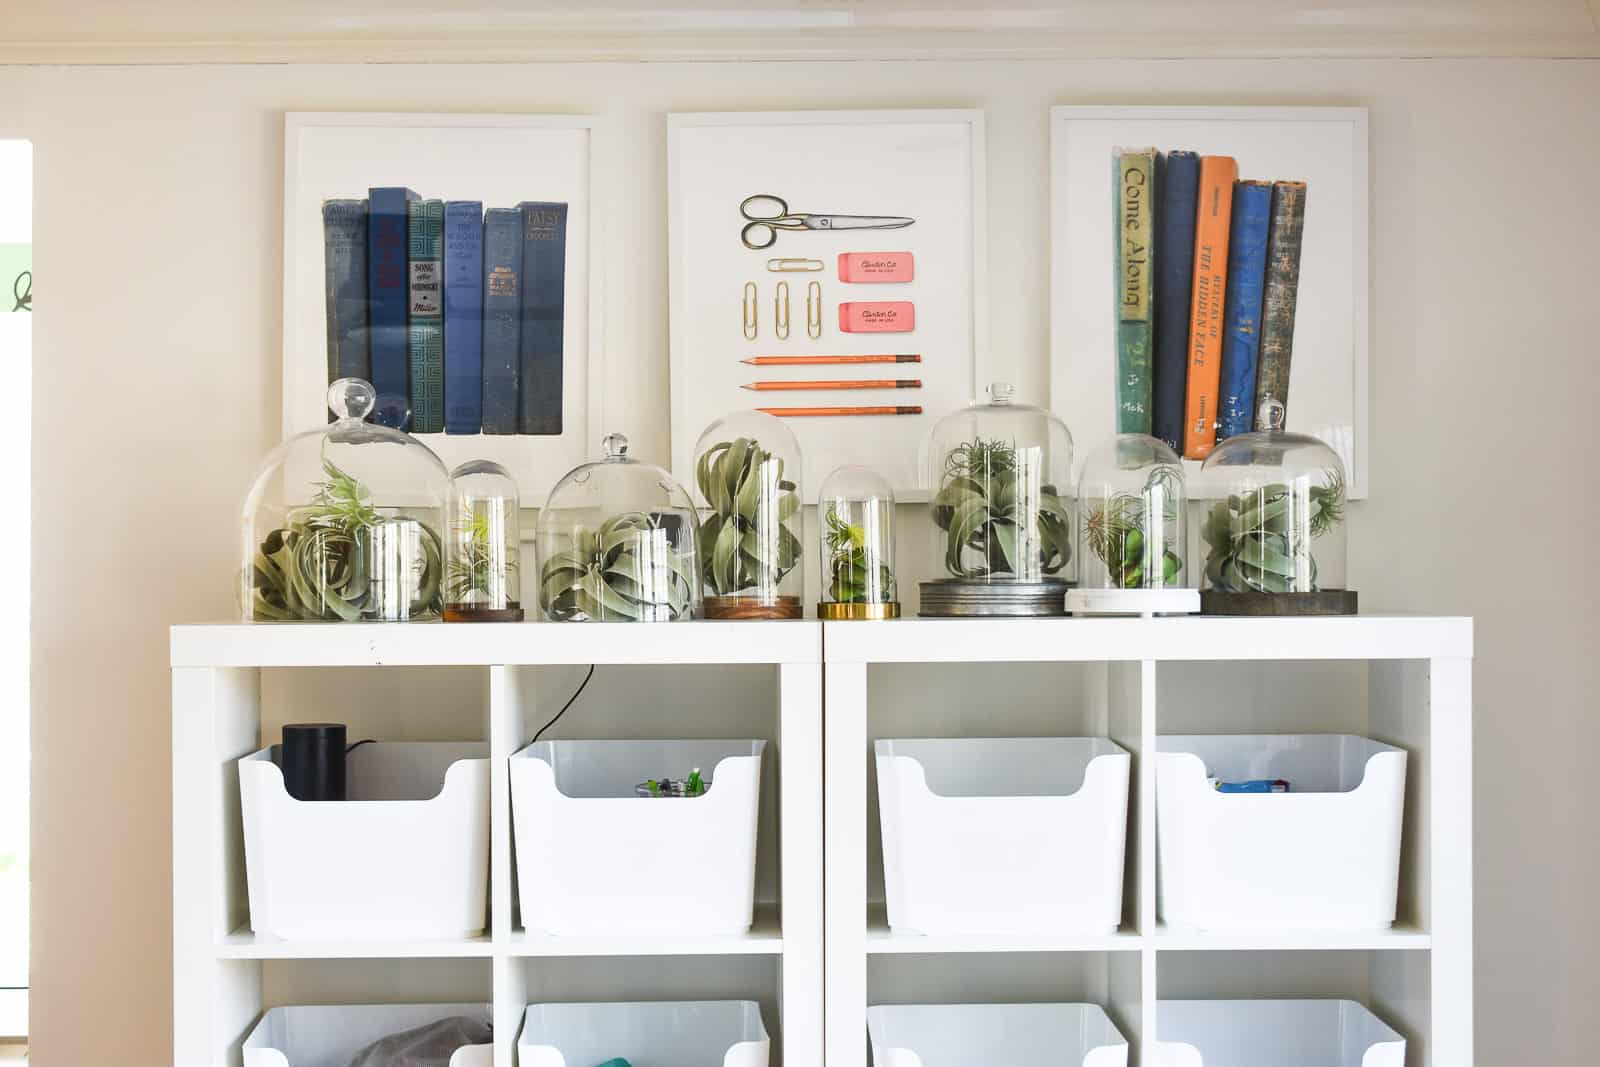 minted prints above the storage shelf